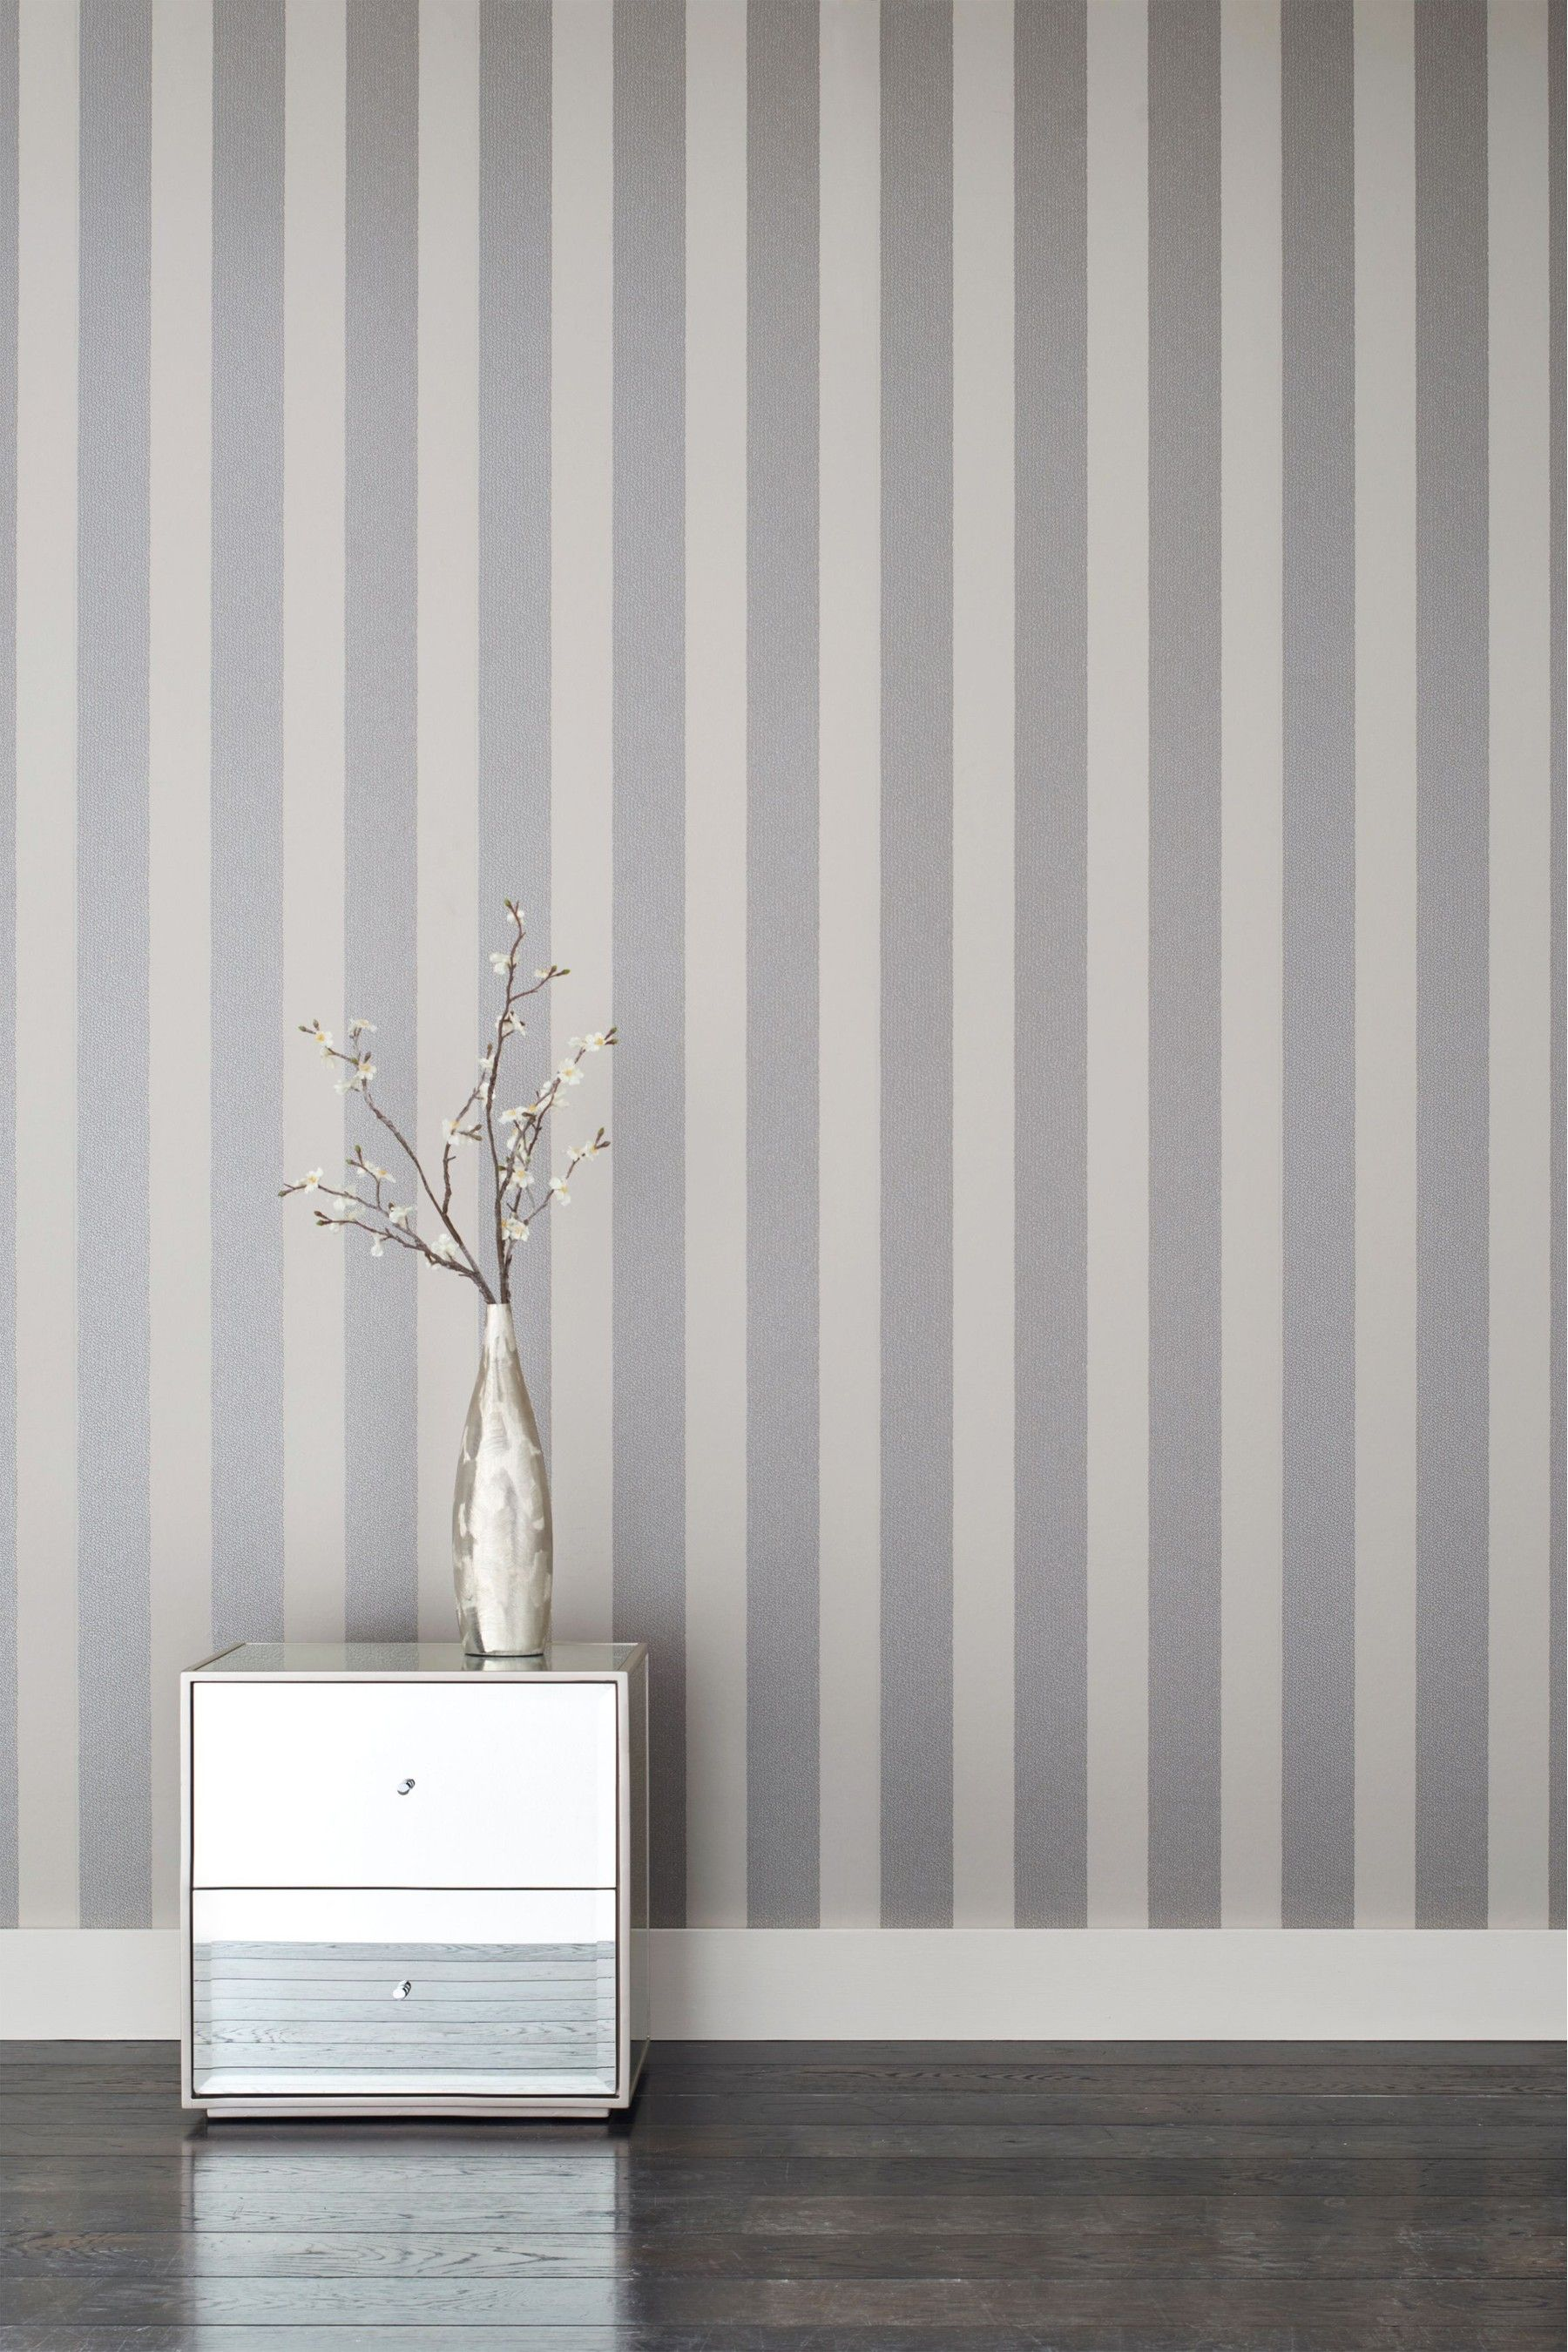 Buy Paste The Wall Sequin Stripe Wallpaper From The Next Uk